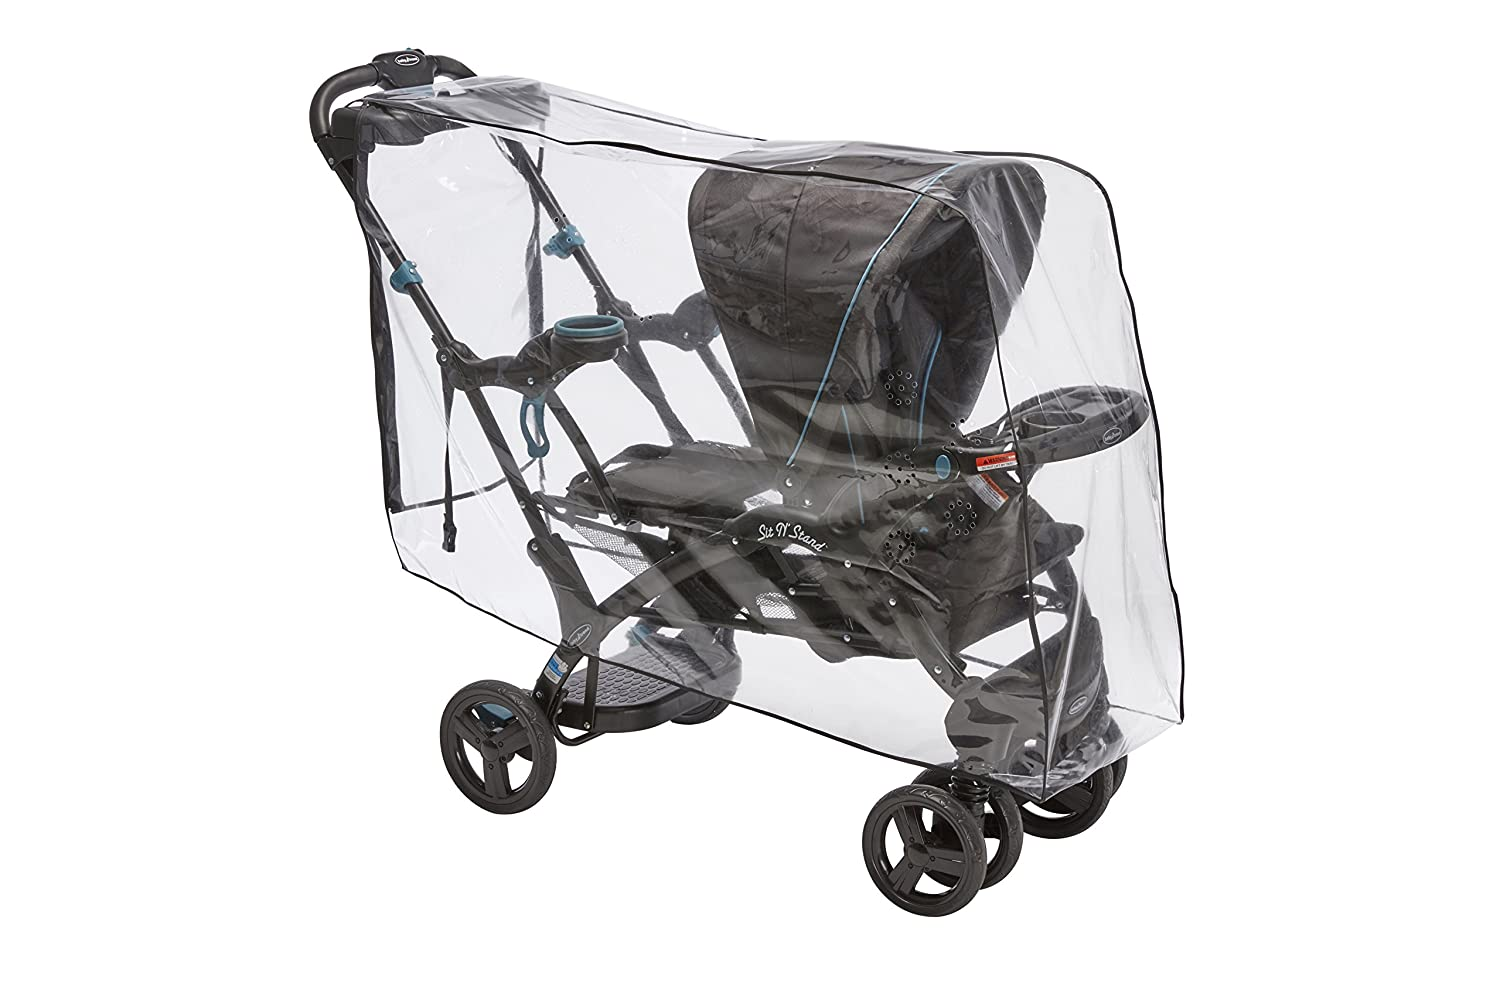 Sashas Premium Series Rain and Wind Cover for Baby Trend Sit N Stand Ultra Tandem Stroller